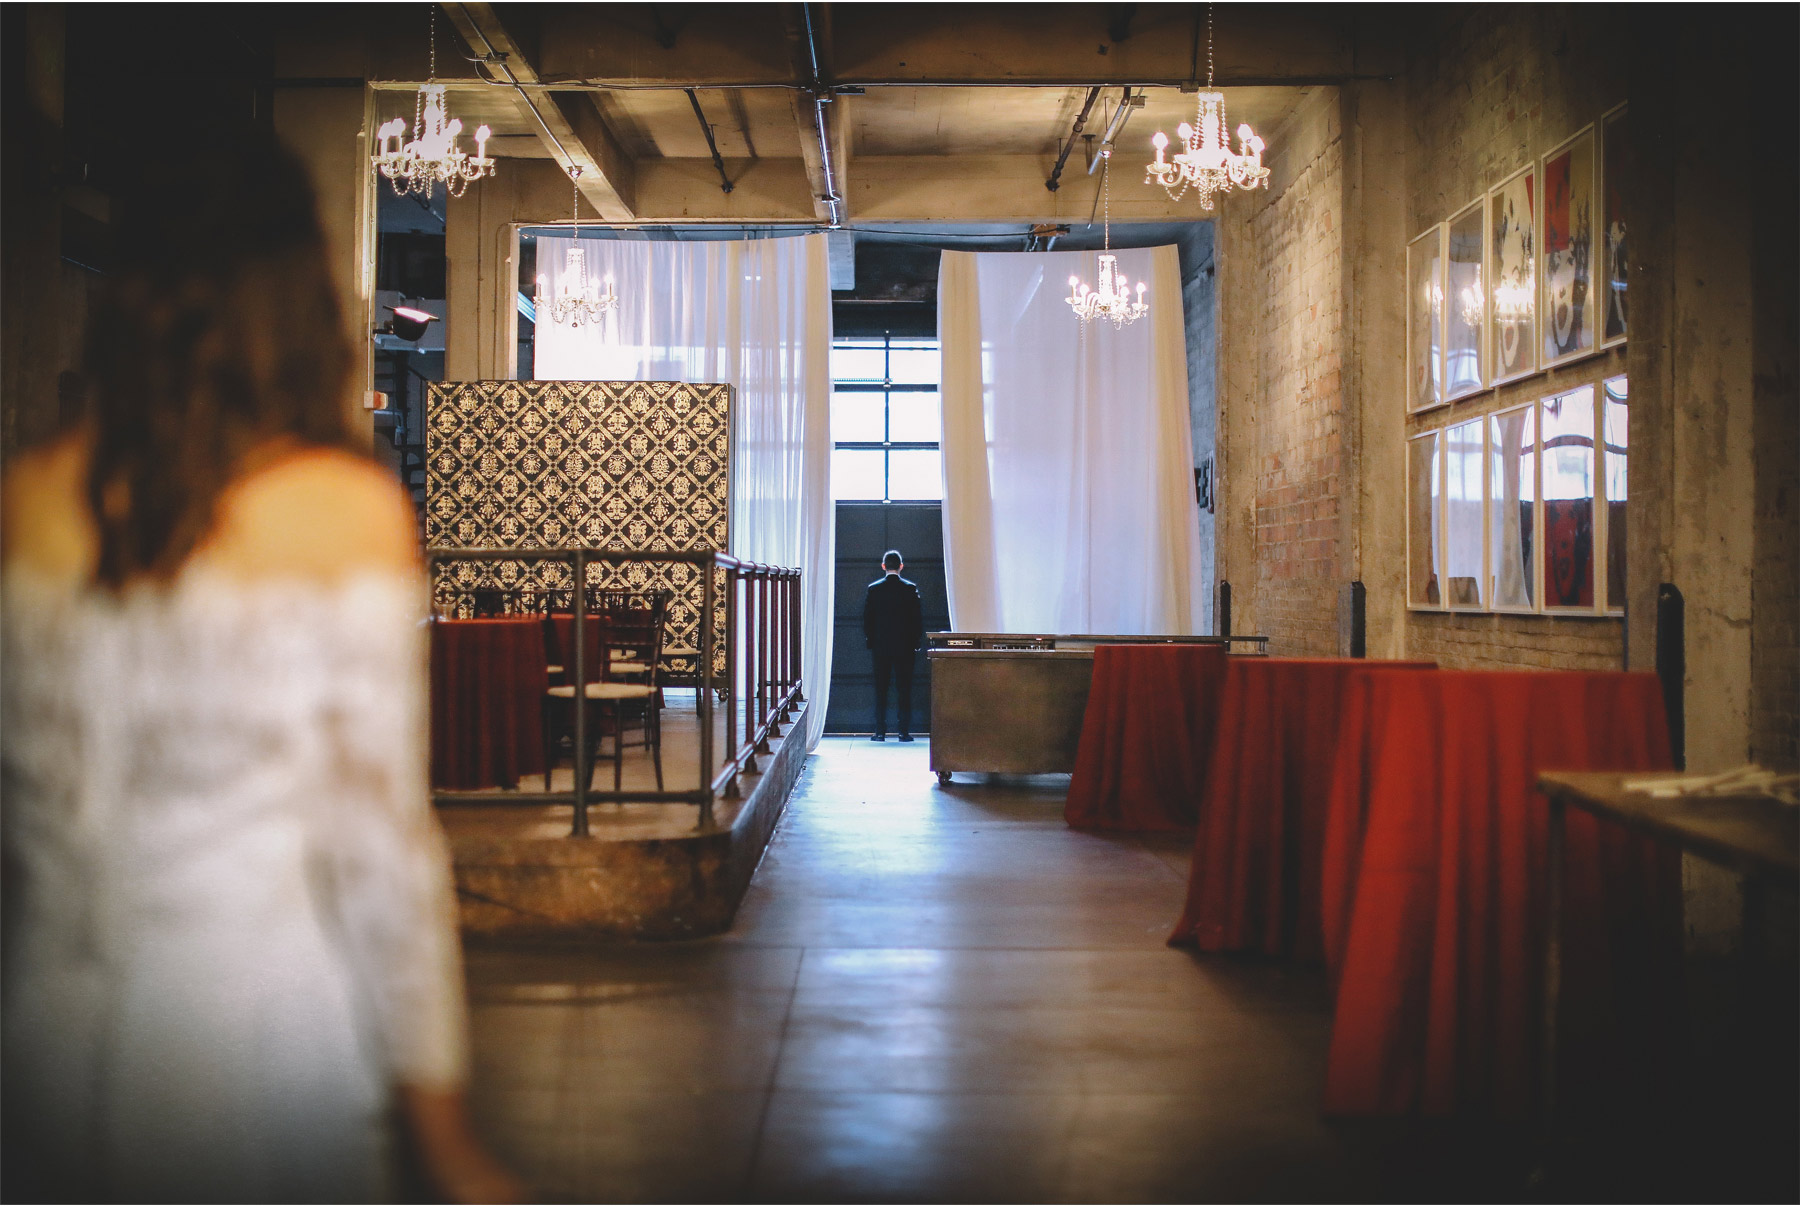 02-Minneapolis-Minnesota-Wedding-Photographer-by-Vick-Photography-Aria-First-Look-Maggie-and-Matt.jpg